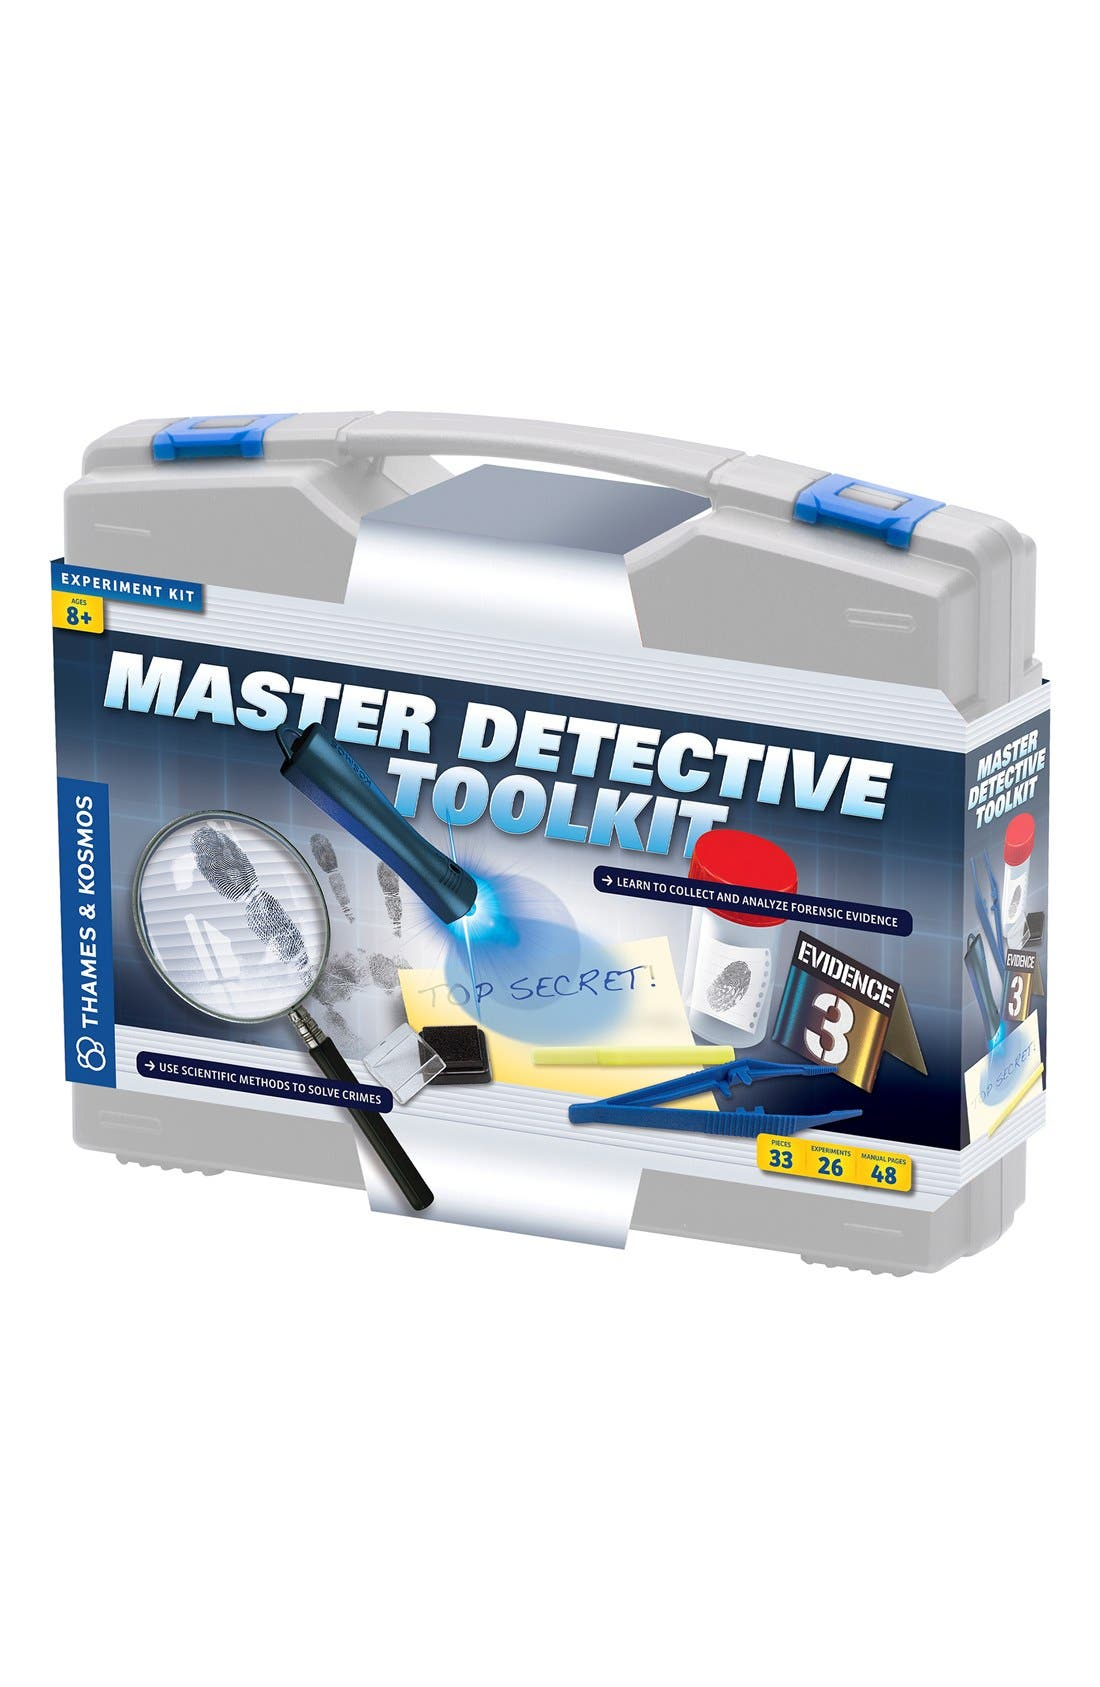 Alternate Image 1 Selected - Thames & Kosmos 'Master Detective Toolkit' Experiment Kit